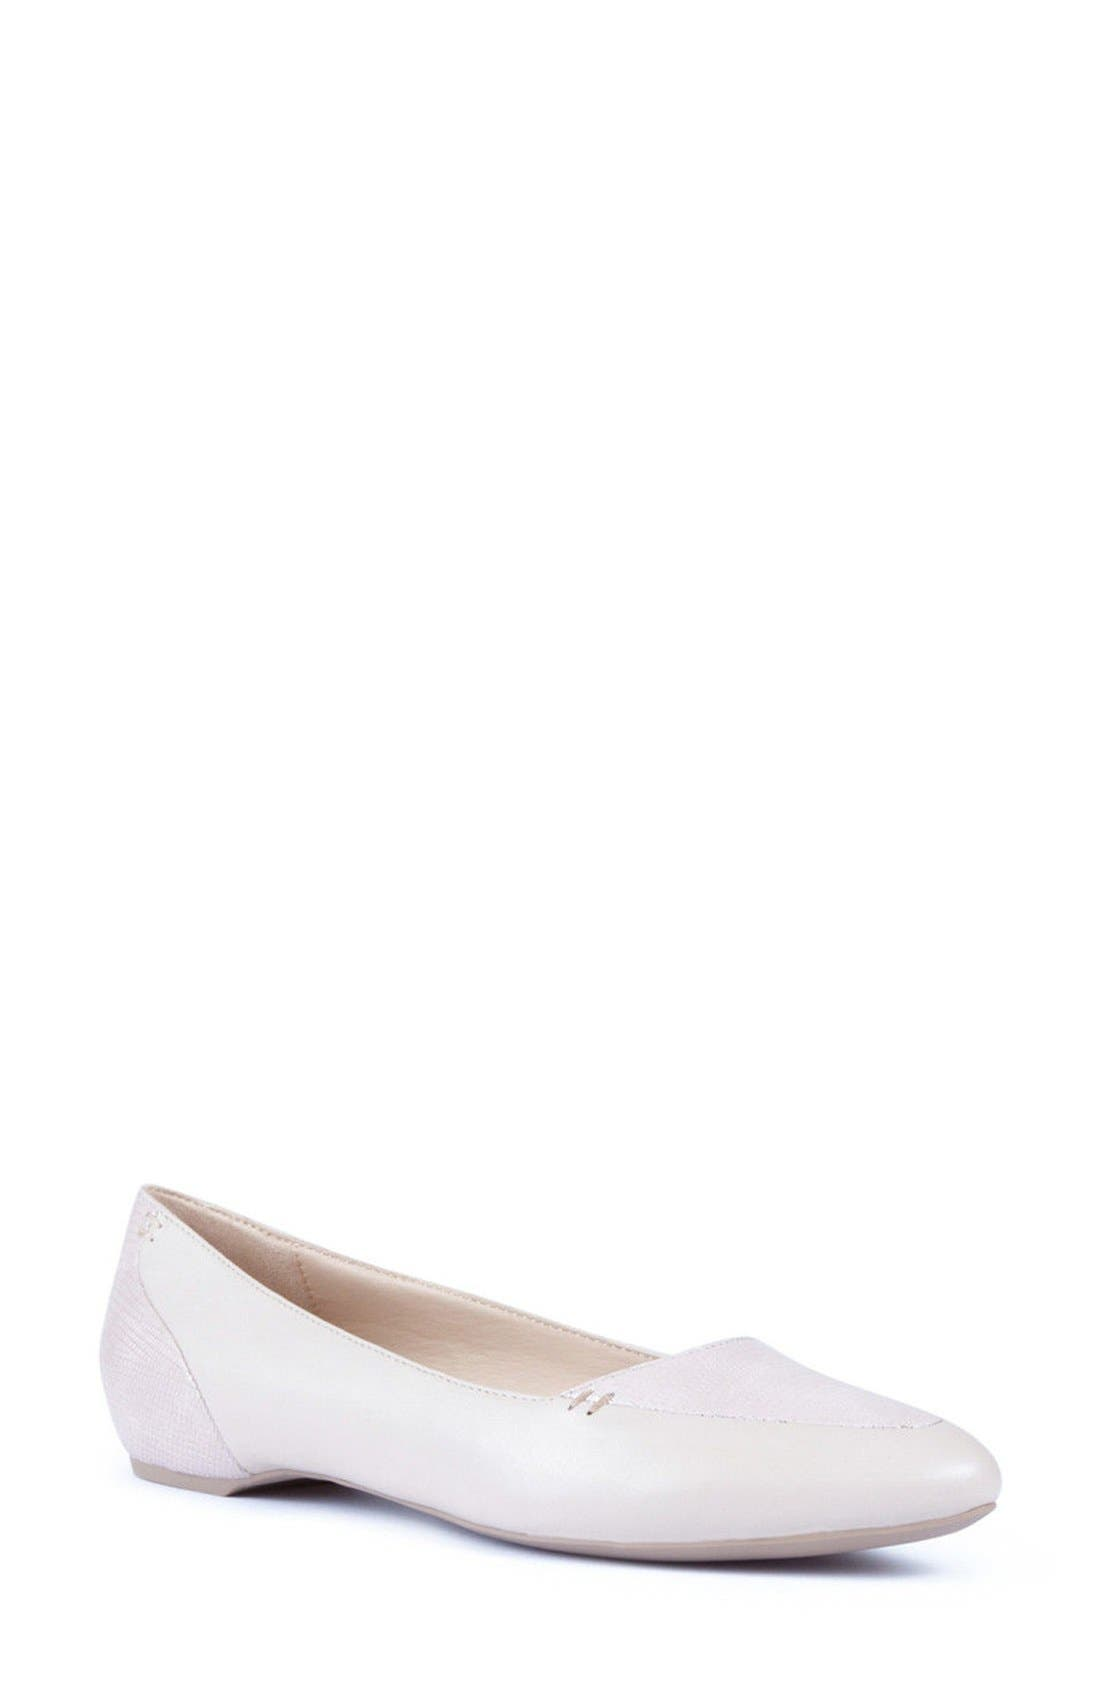 GEOX 'Leslie 21' Pointy Toe Ballet Flat